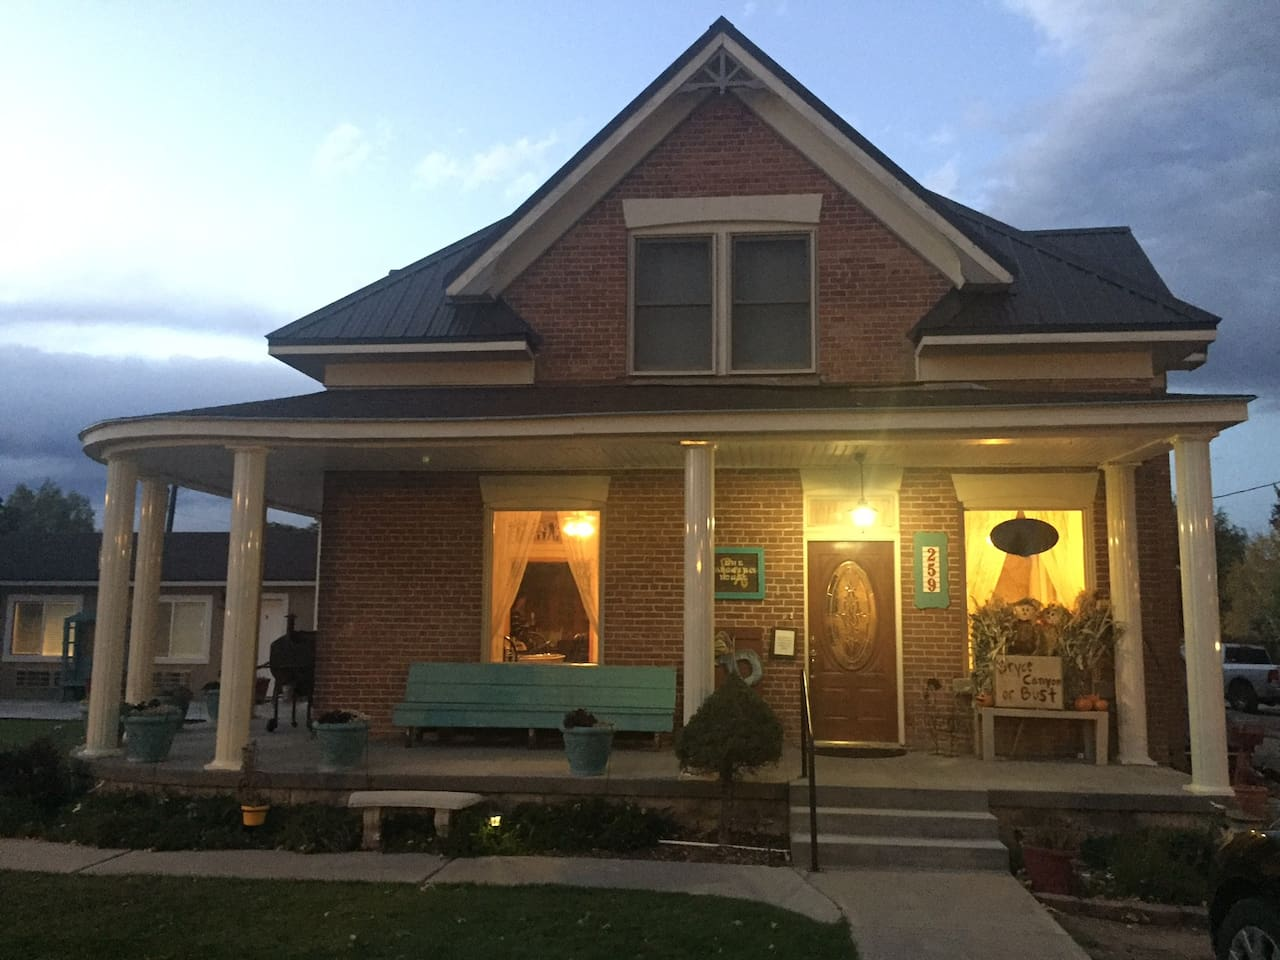 Panguitch House Bed and Breakfast